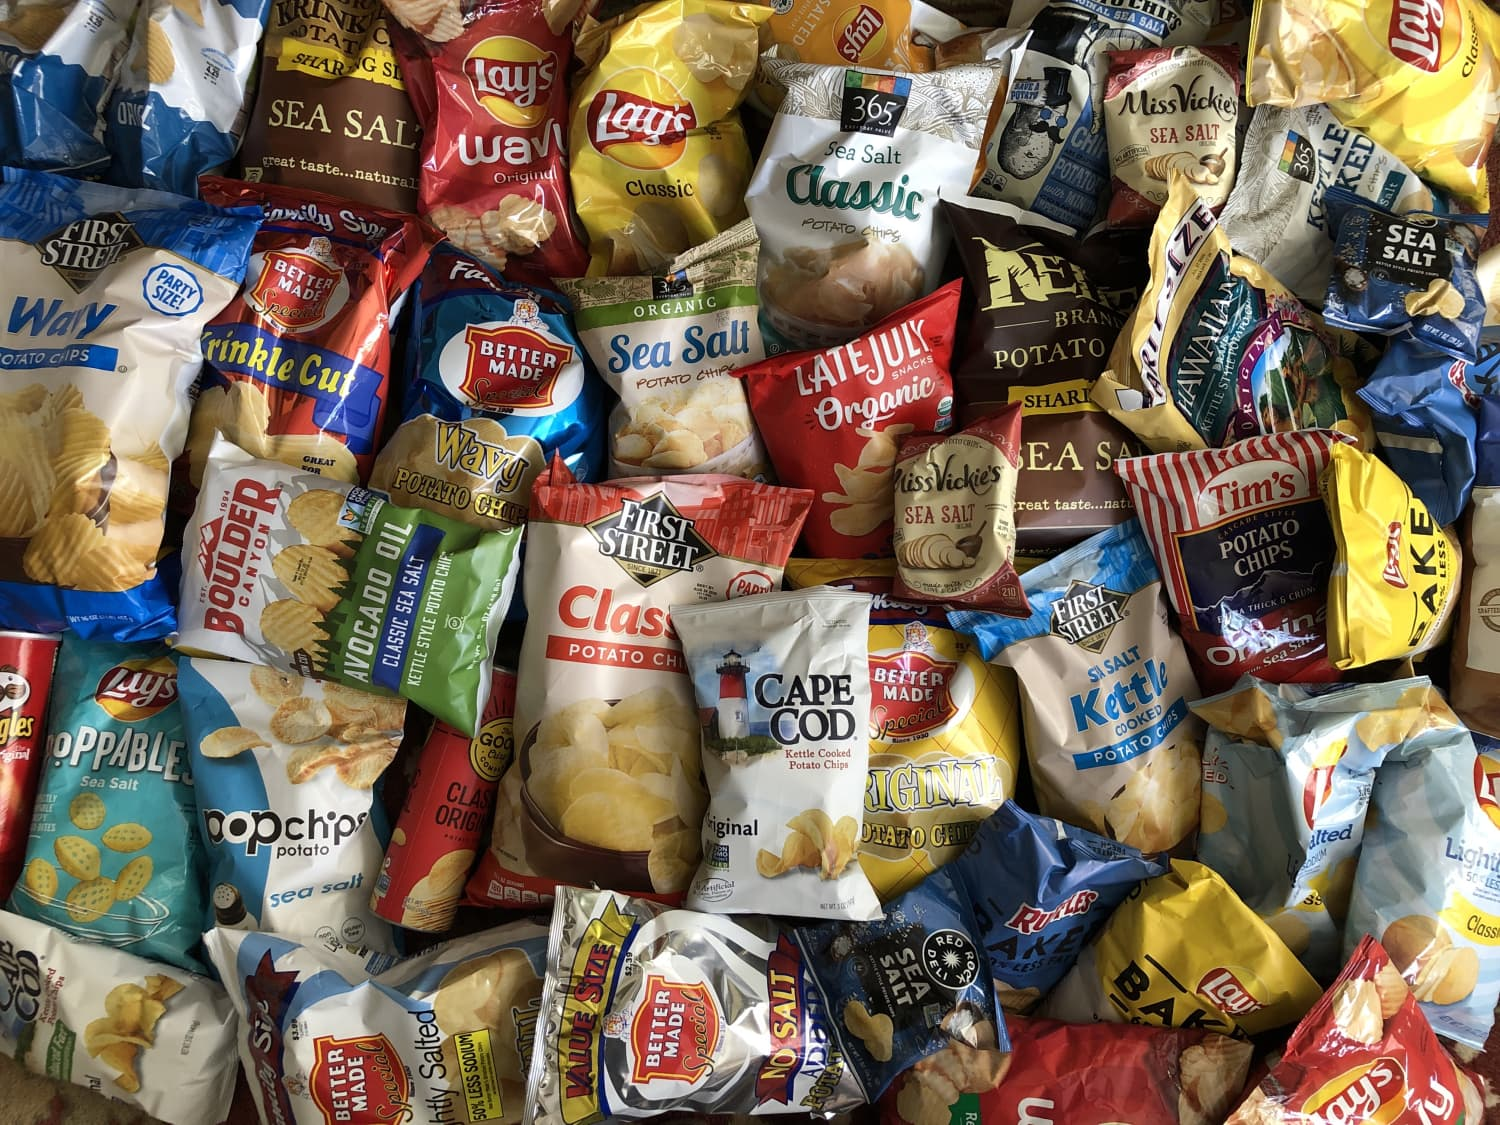 I Tried 40 Bags of Plain Potato Chips (Yes, 40) and Here Are the Best Ones